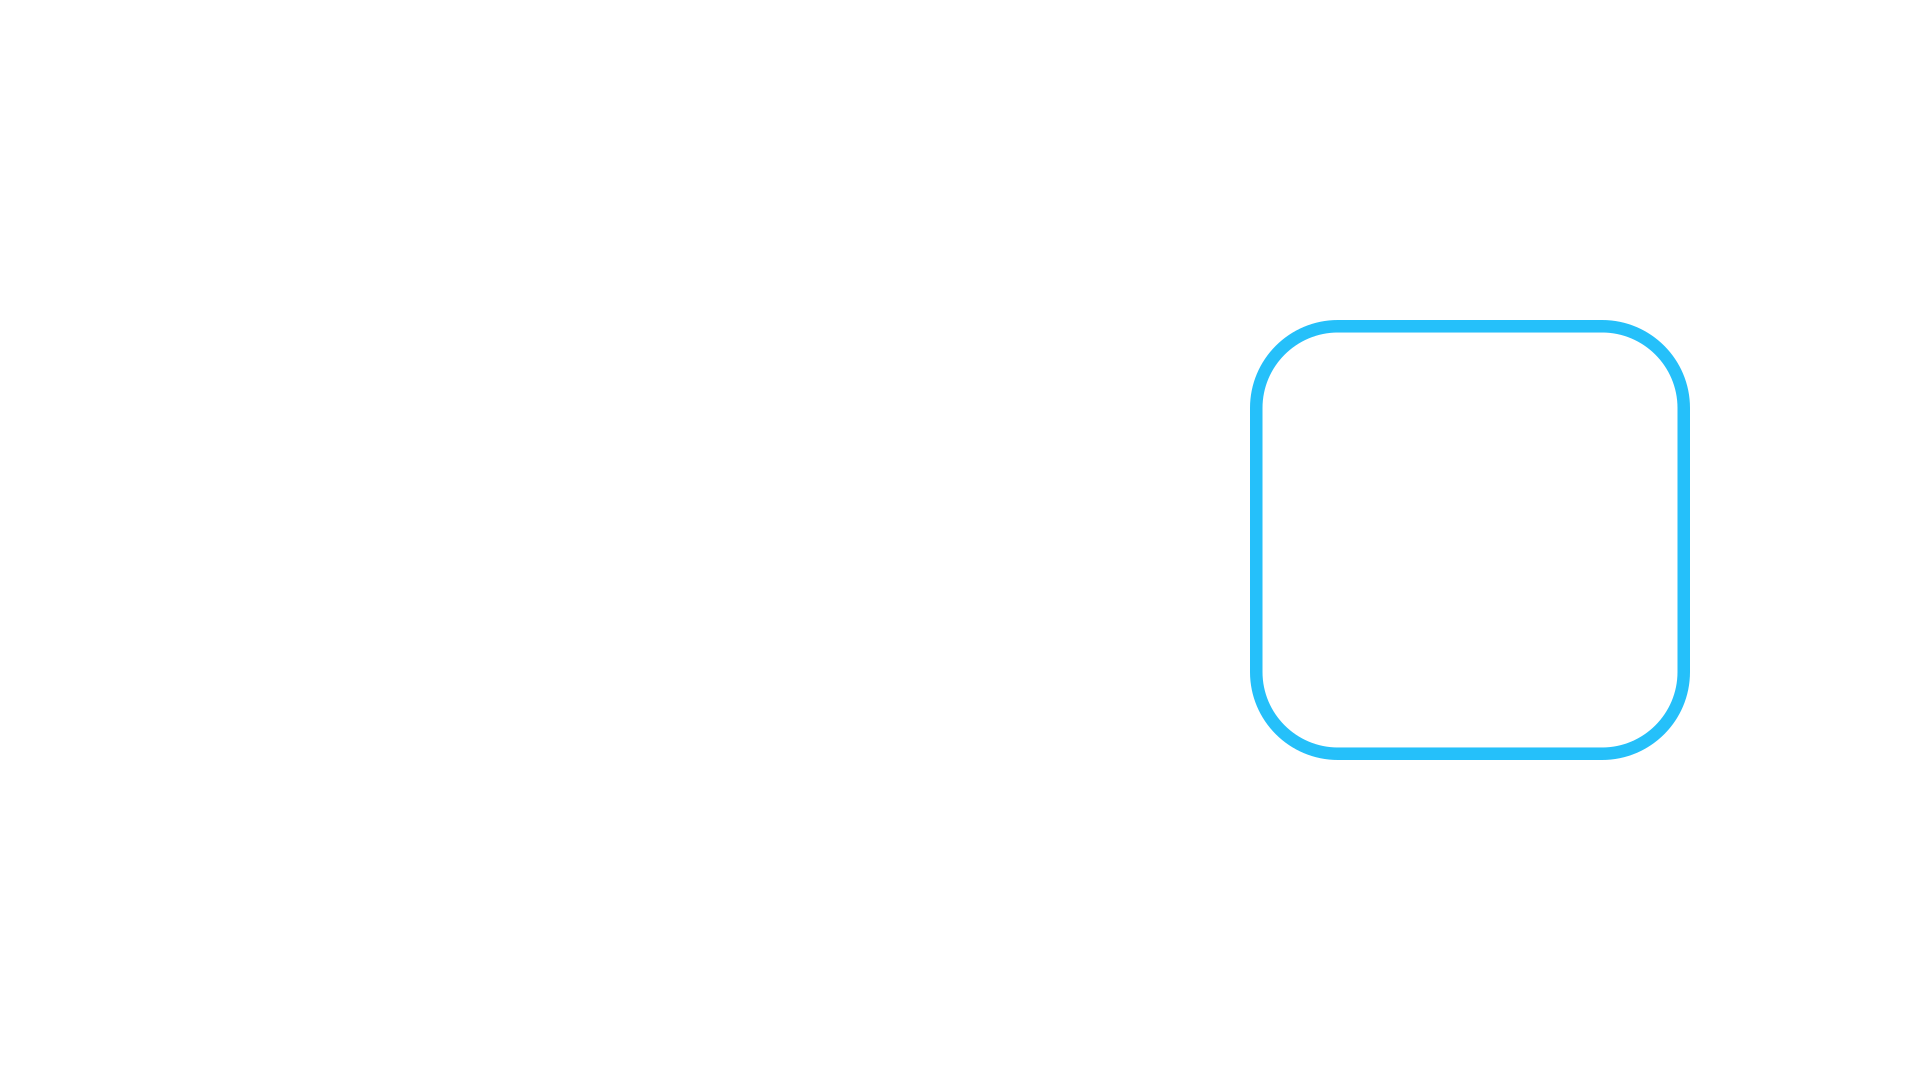 LEVEL ❹❹ Dresdens erste Gaming- und eSport-Bar